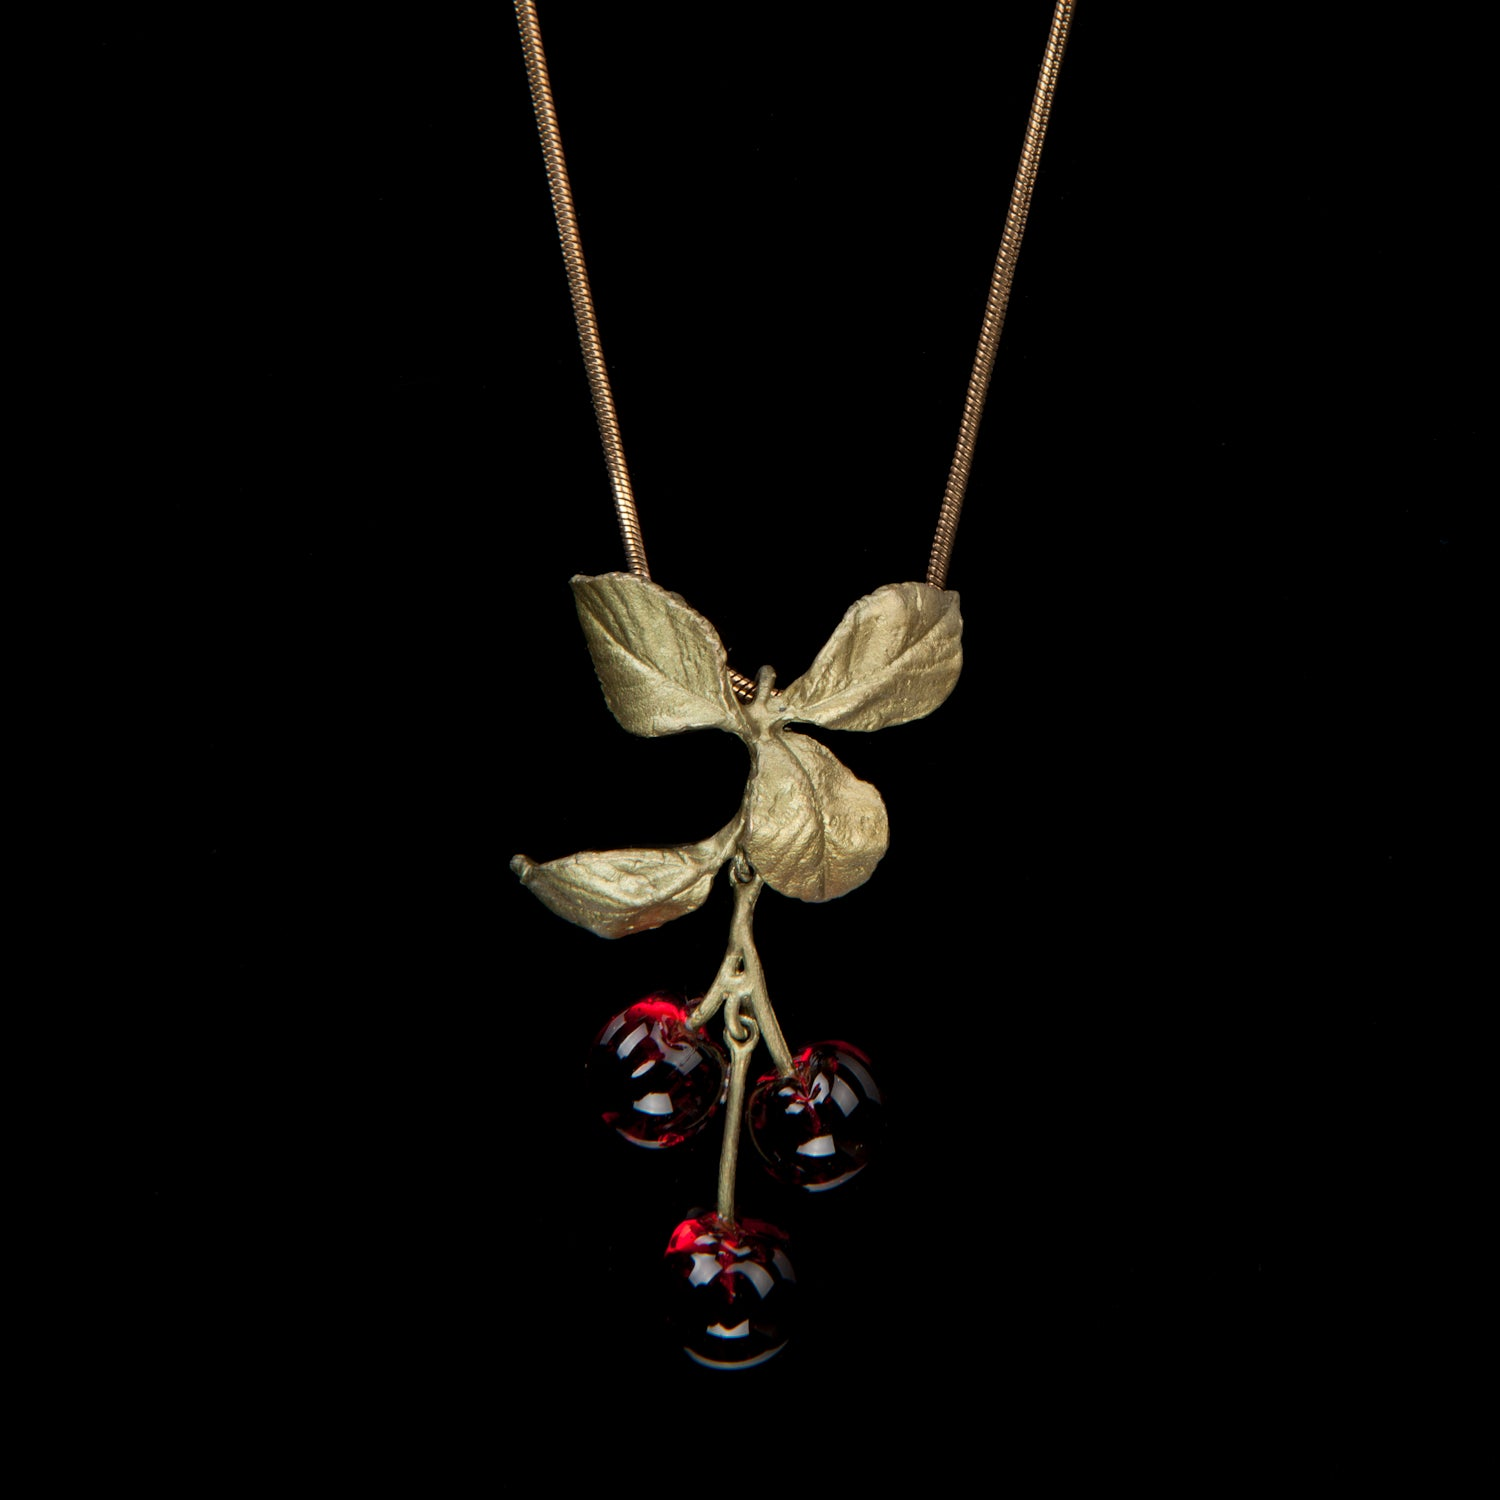 Morello Cherry Pendant